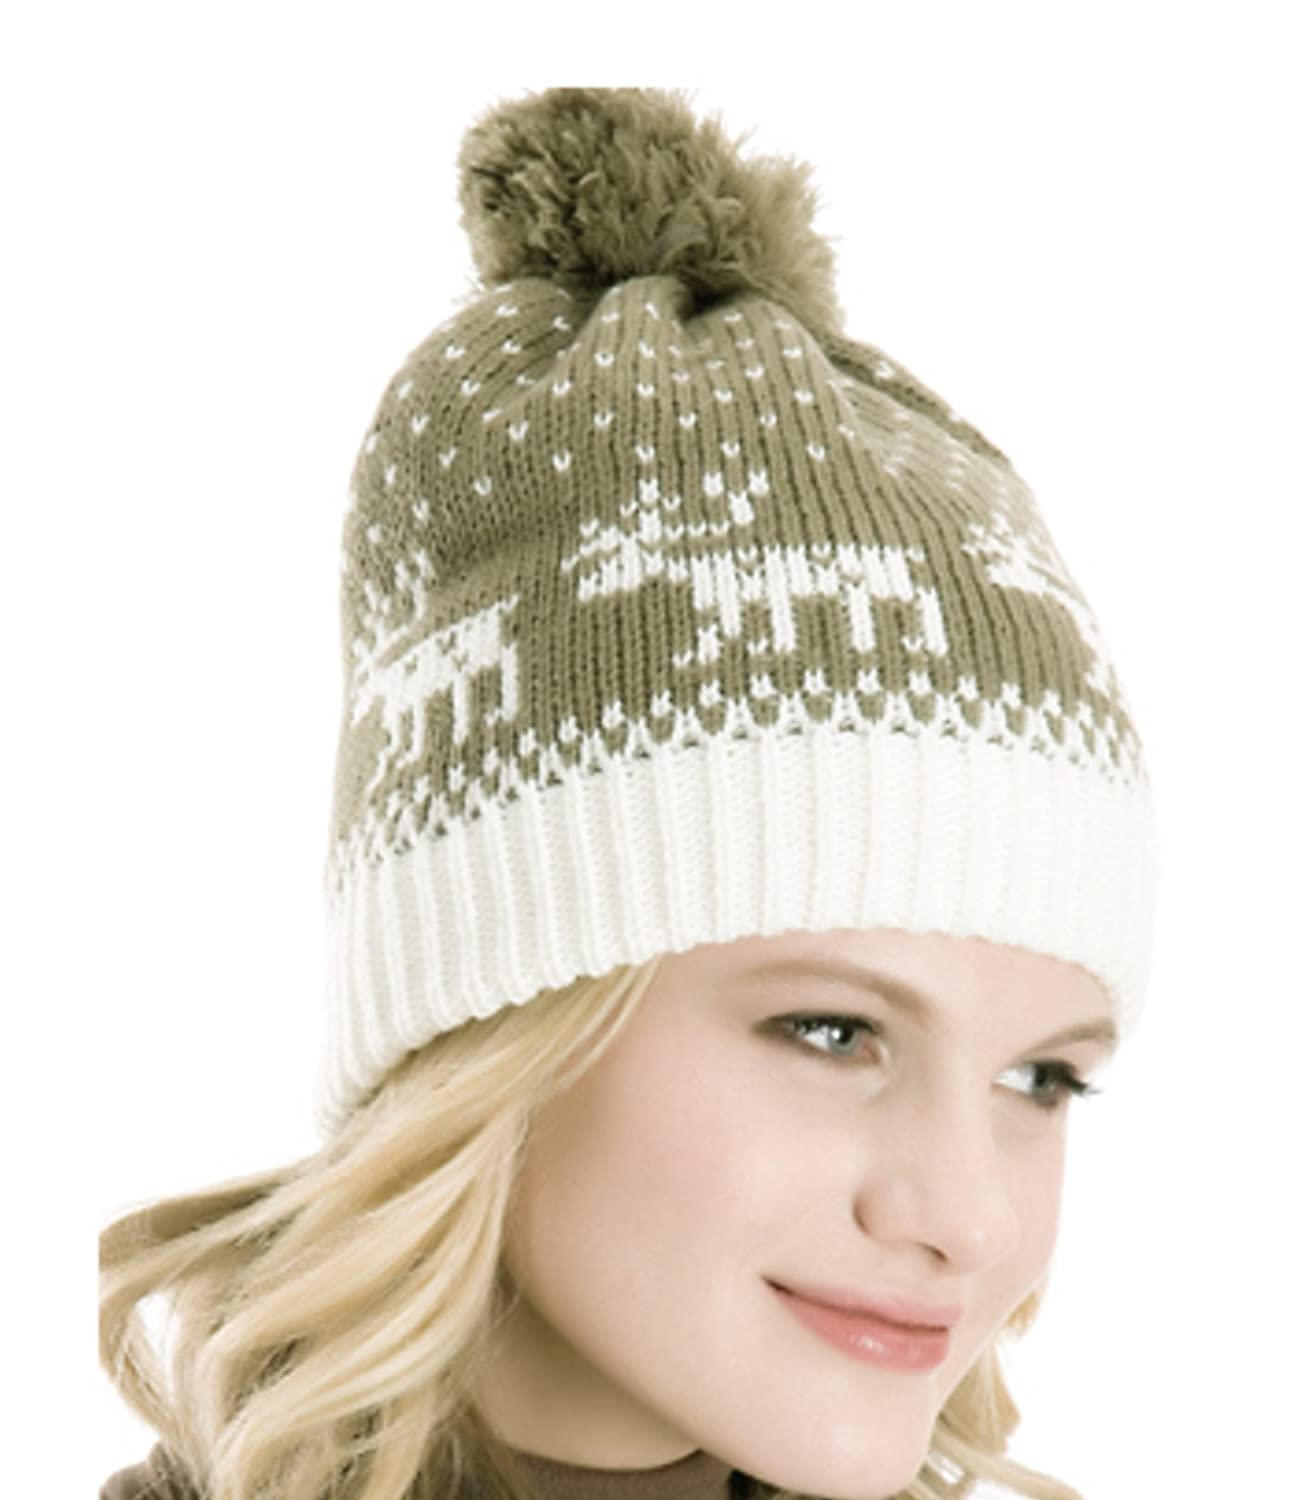 74cc14b9e6e Rjm Ladies Fairisle Reindeer Print Knitted Bobble hat - Several Colours  (Khaki)  Amazon.co.uk  Clothing